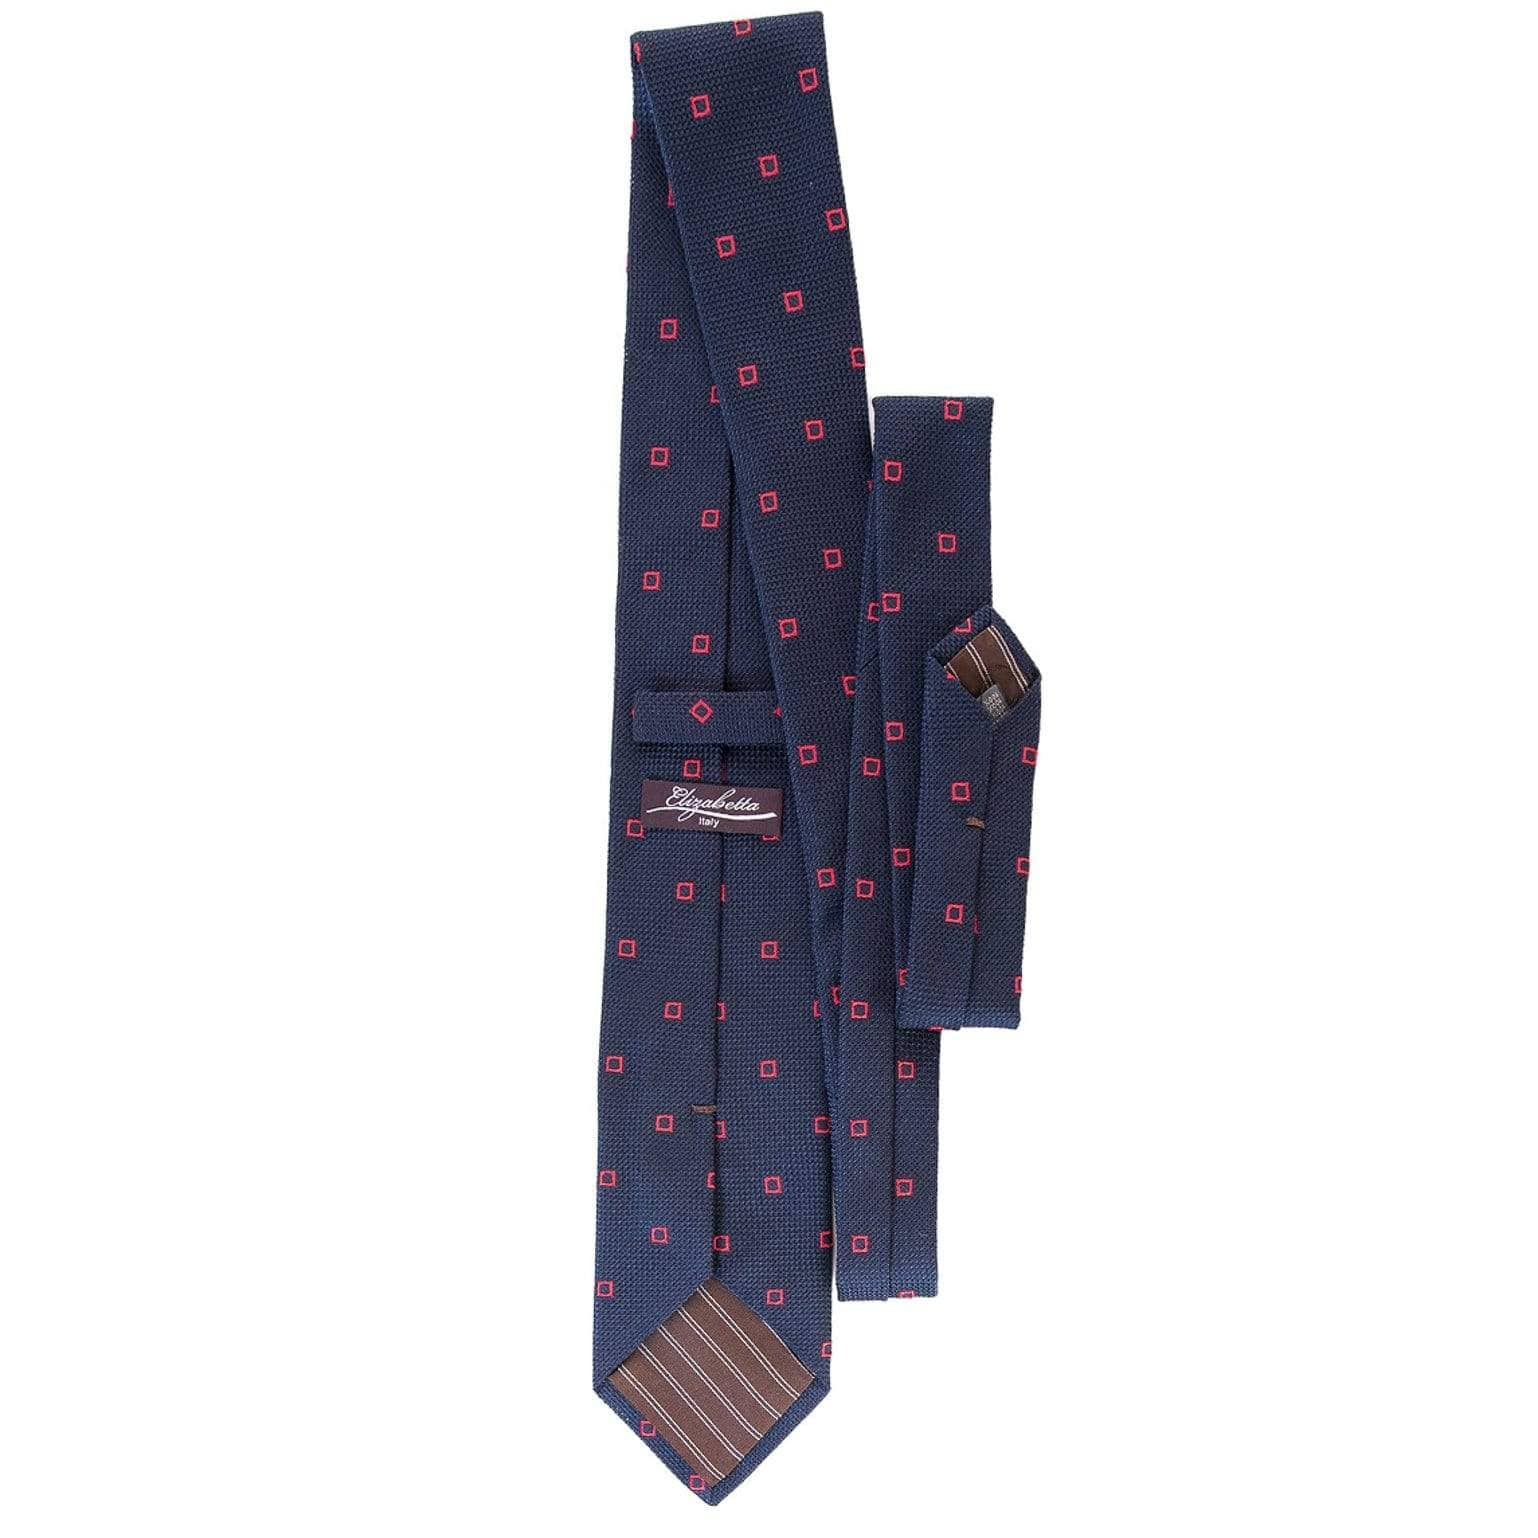 Navy Grenadine Tie with Woven Red Squares